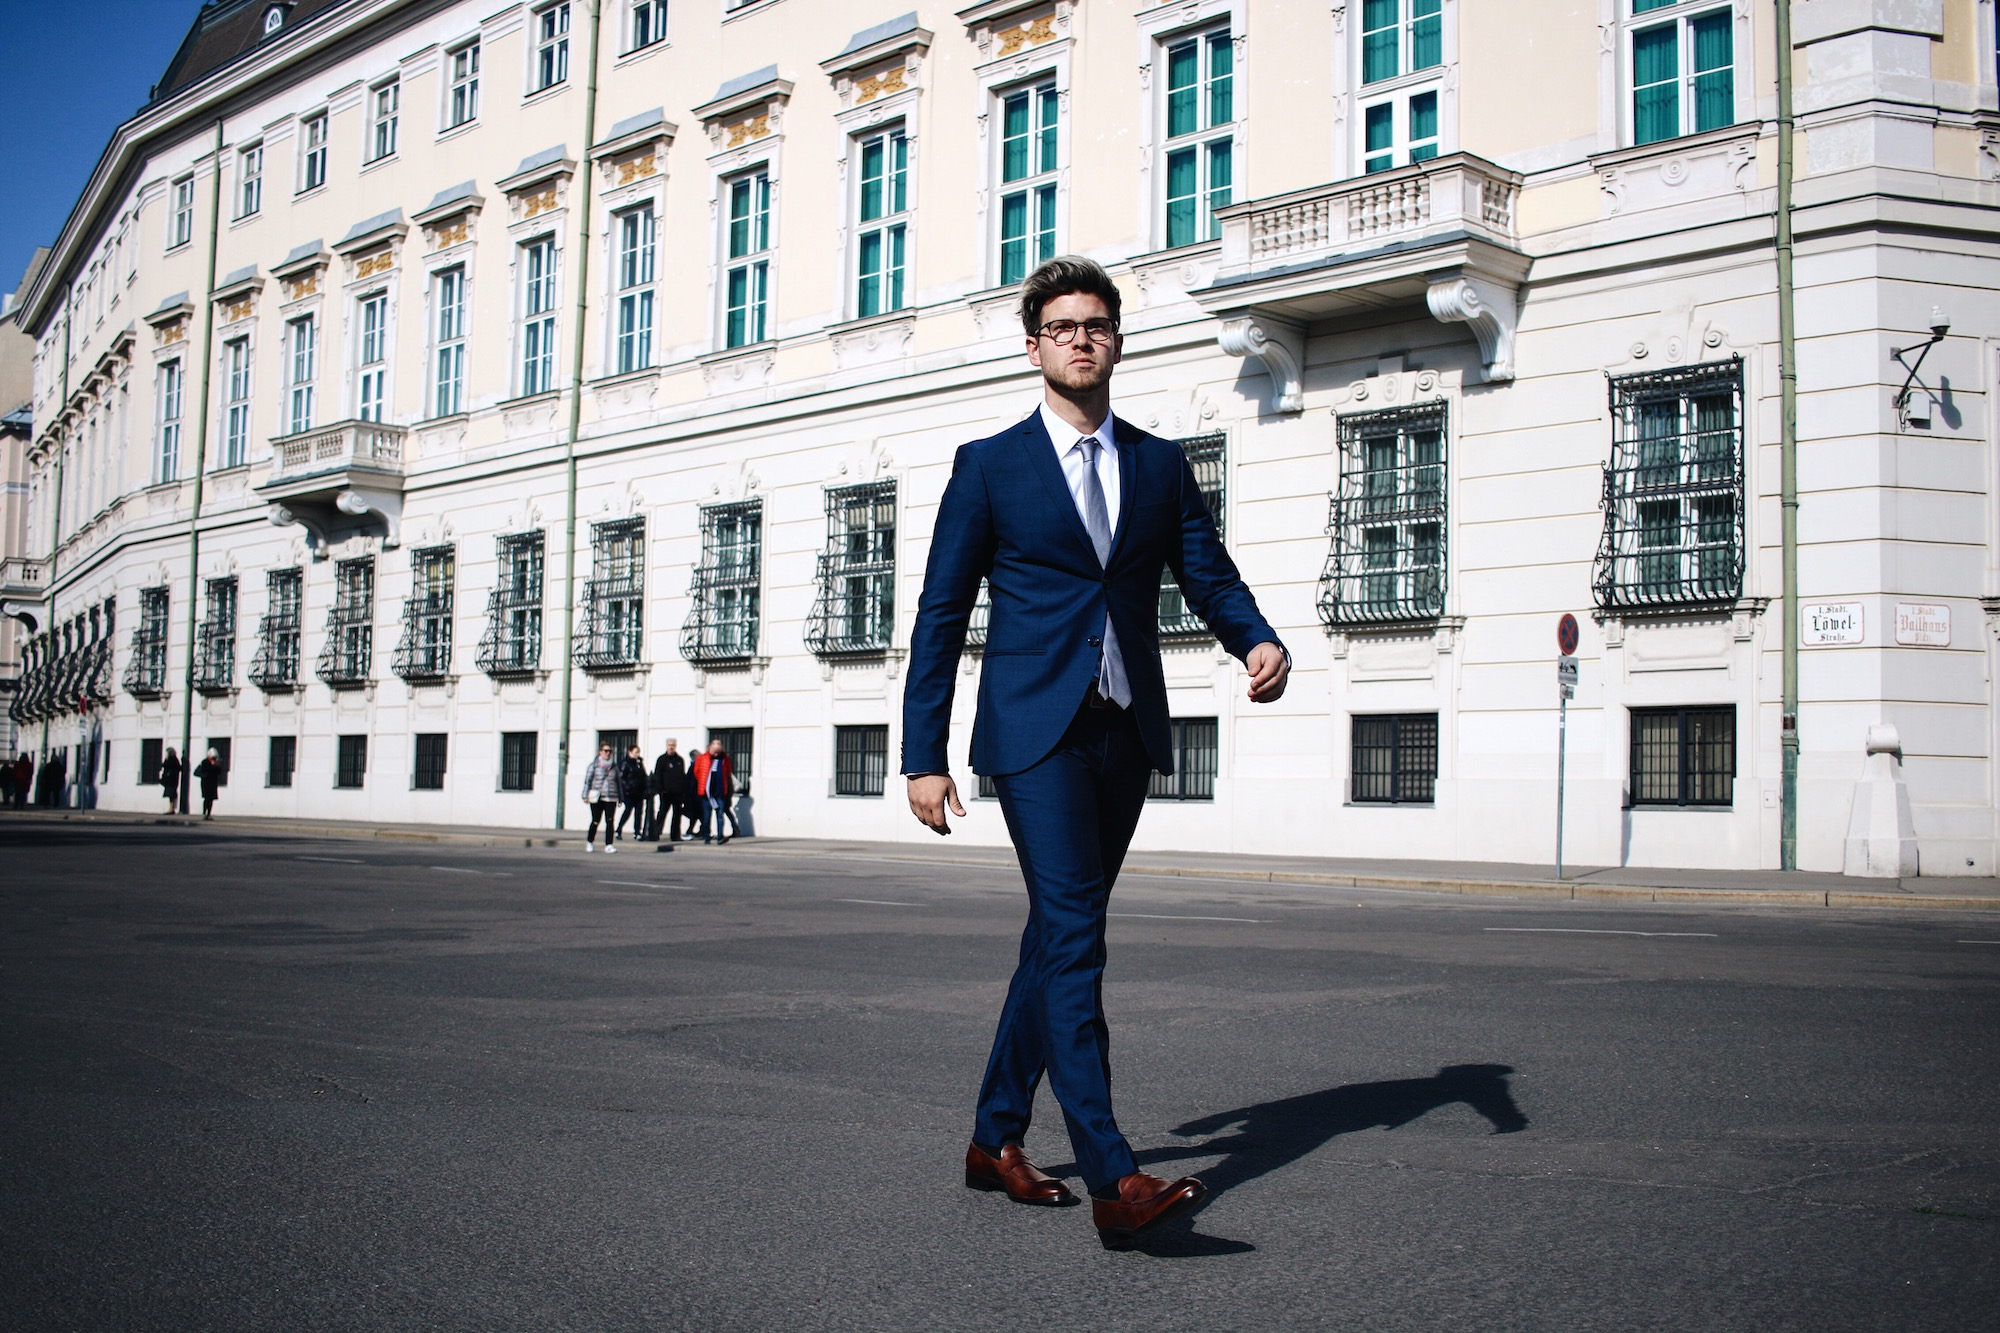 Tiger-Of-Sweden-Suit-Mix-Match_Three-ways-to-wear-a-suit_Meanwhile-in-Awesometown_Austrian-Mens-Fashion-and-Lifestyle-Blogger3